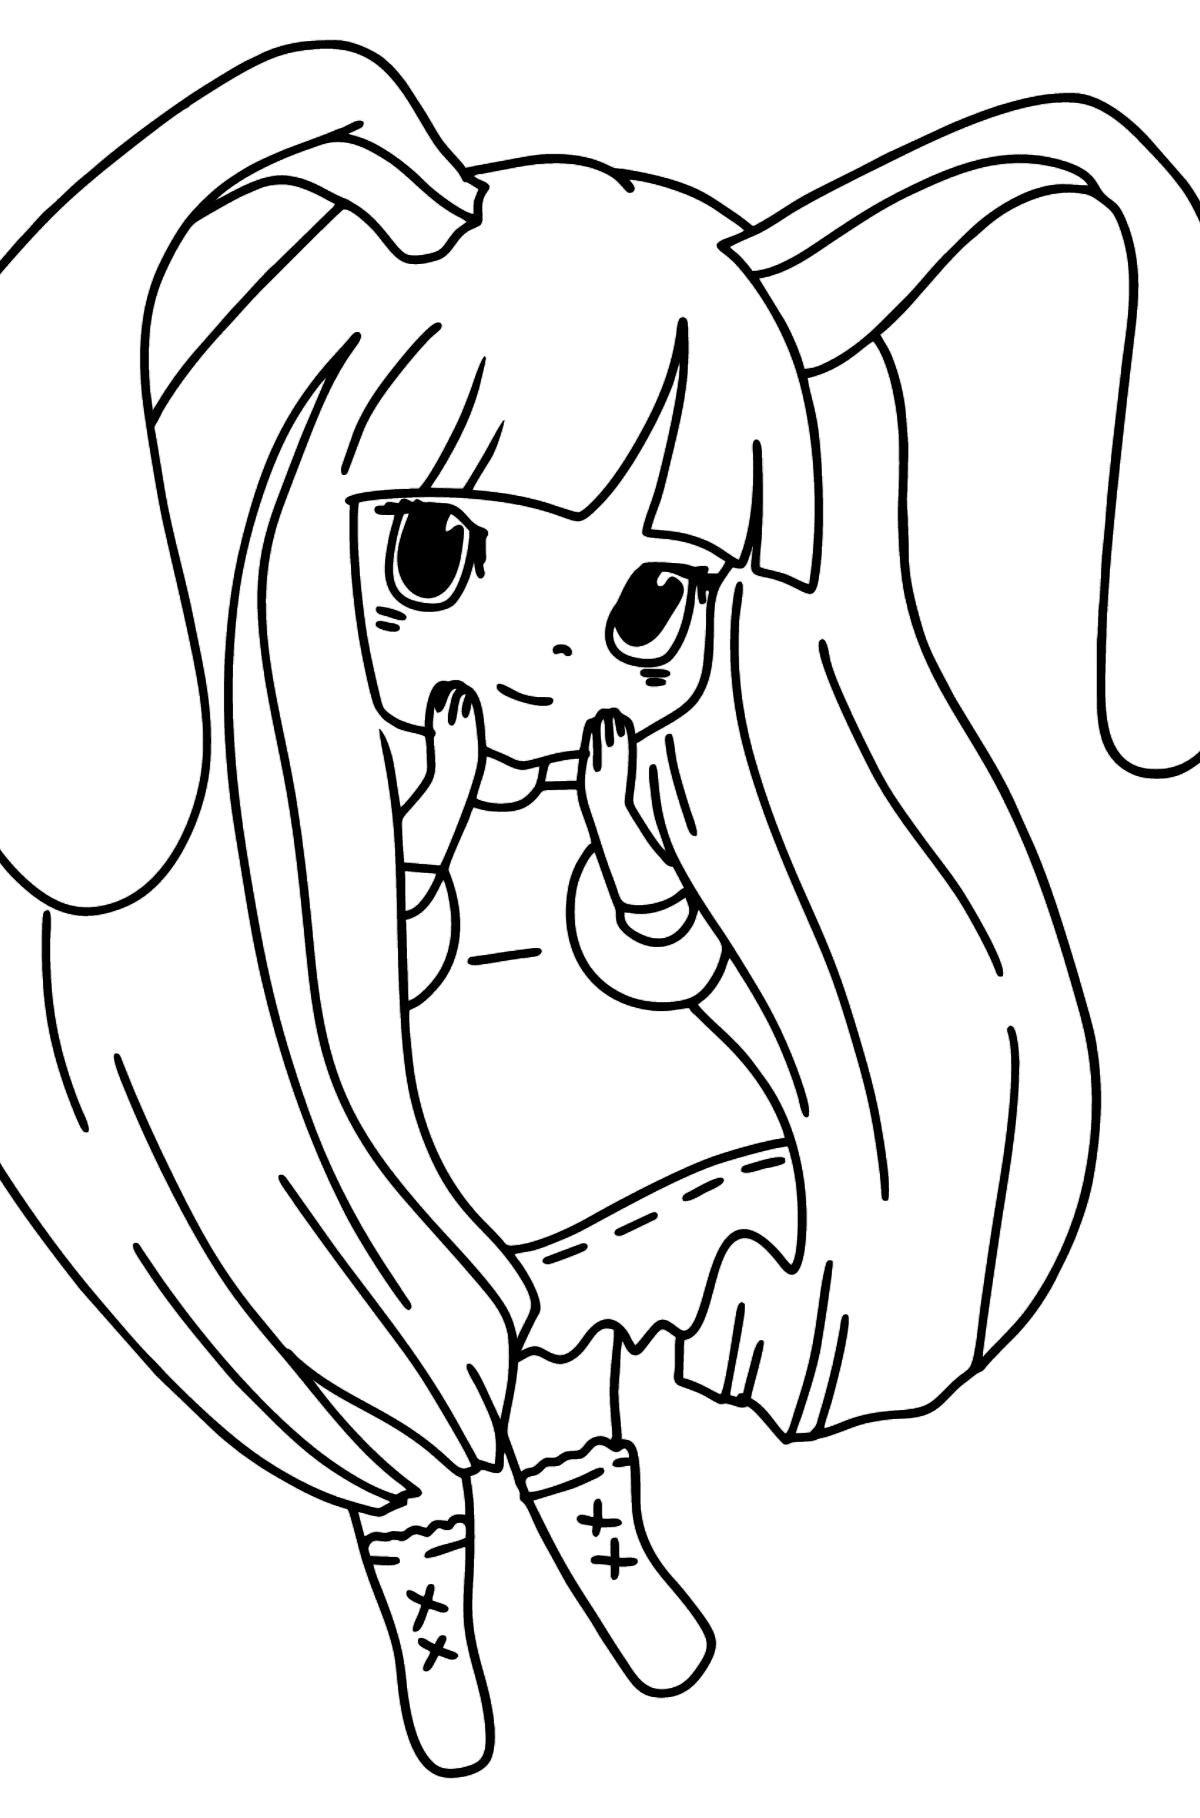 Anime Bunny Girl Coloring Pages - Coloring Pages for Kids